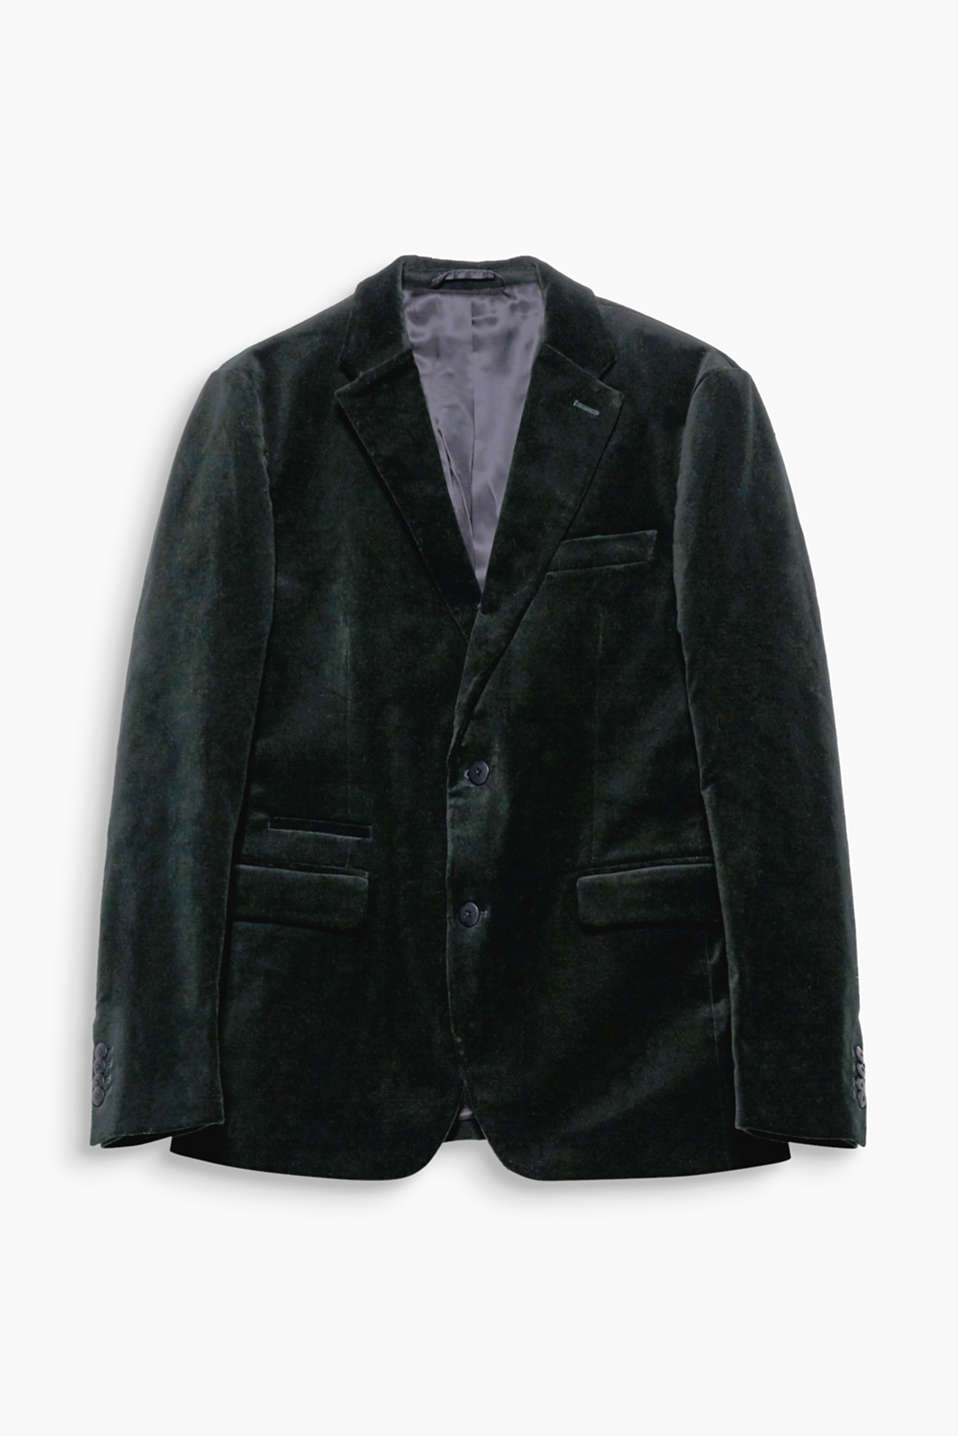 Suit up! This jackets is an effective head-turner because of its shimmering velvet.